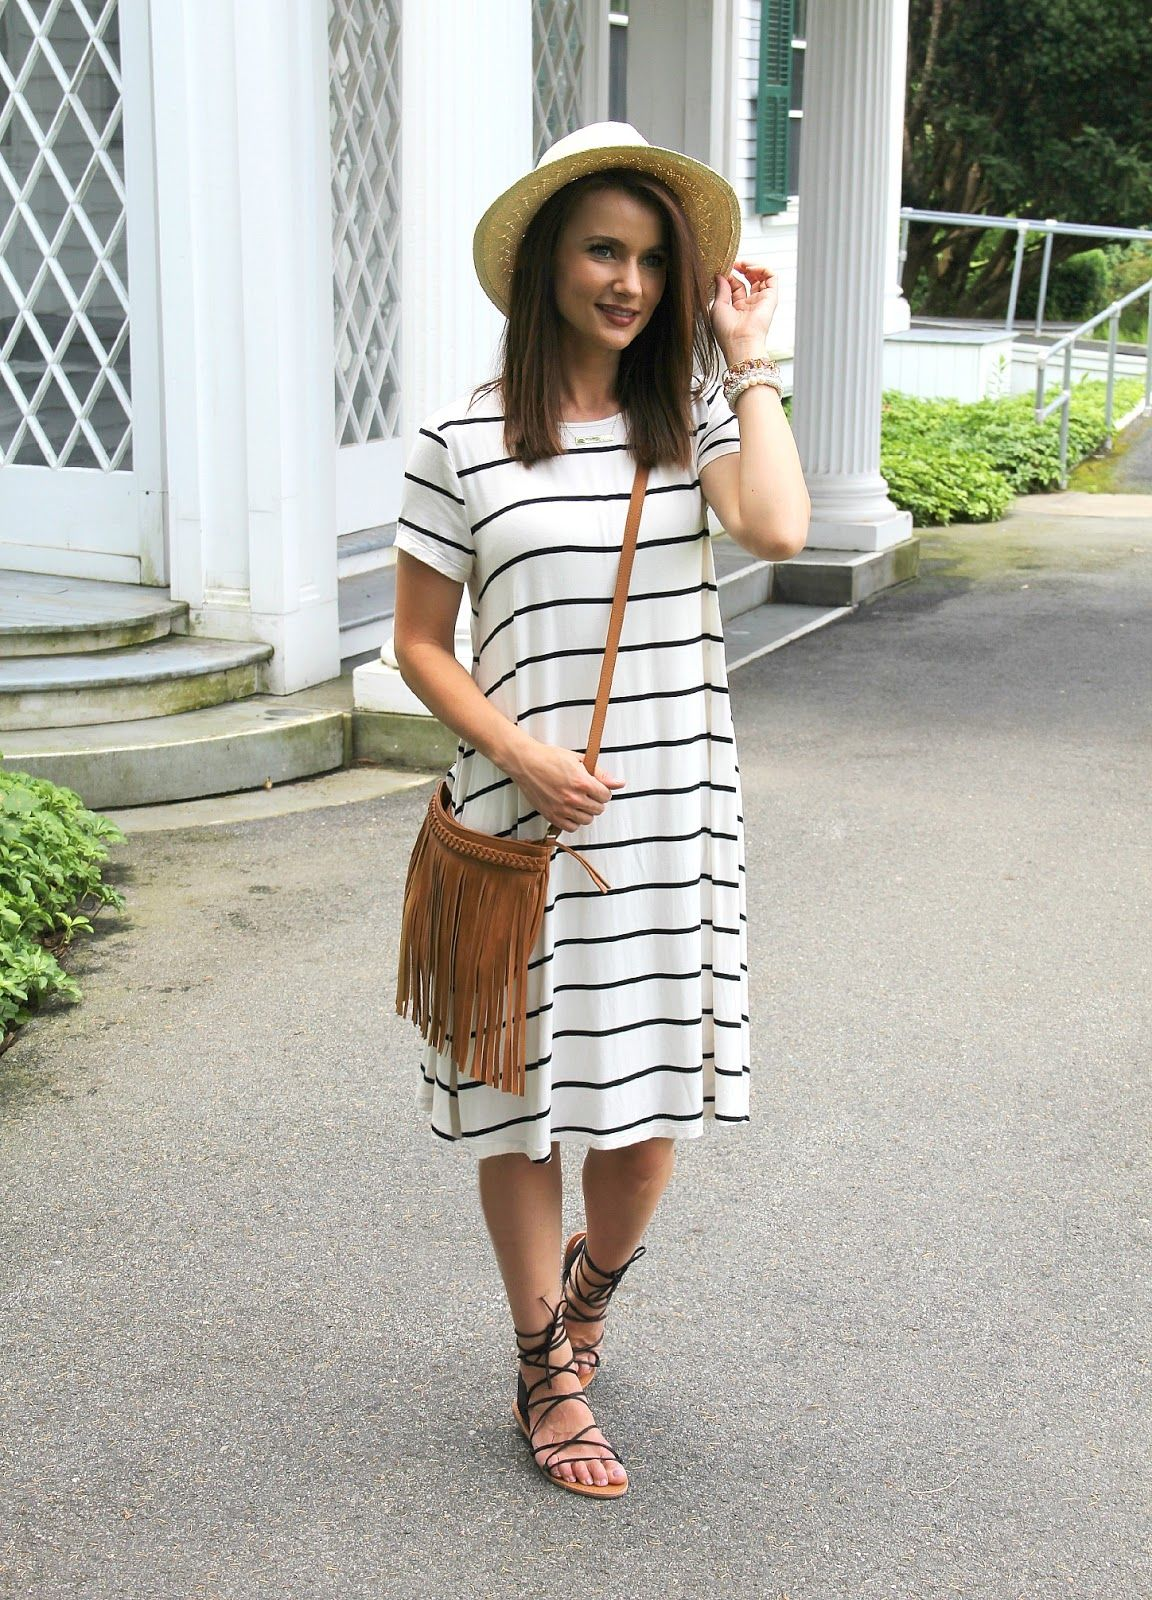 Fashion dresses for summer